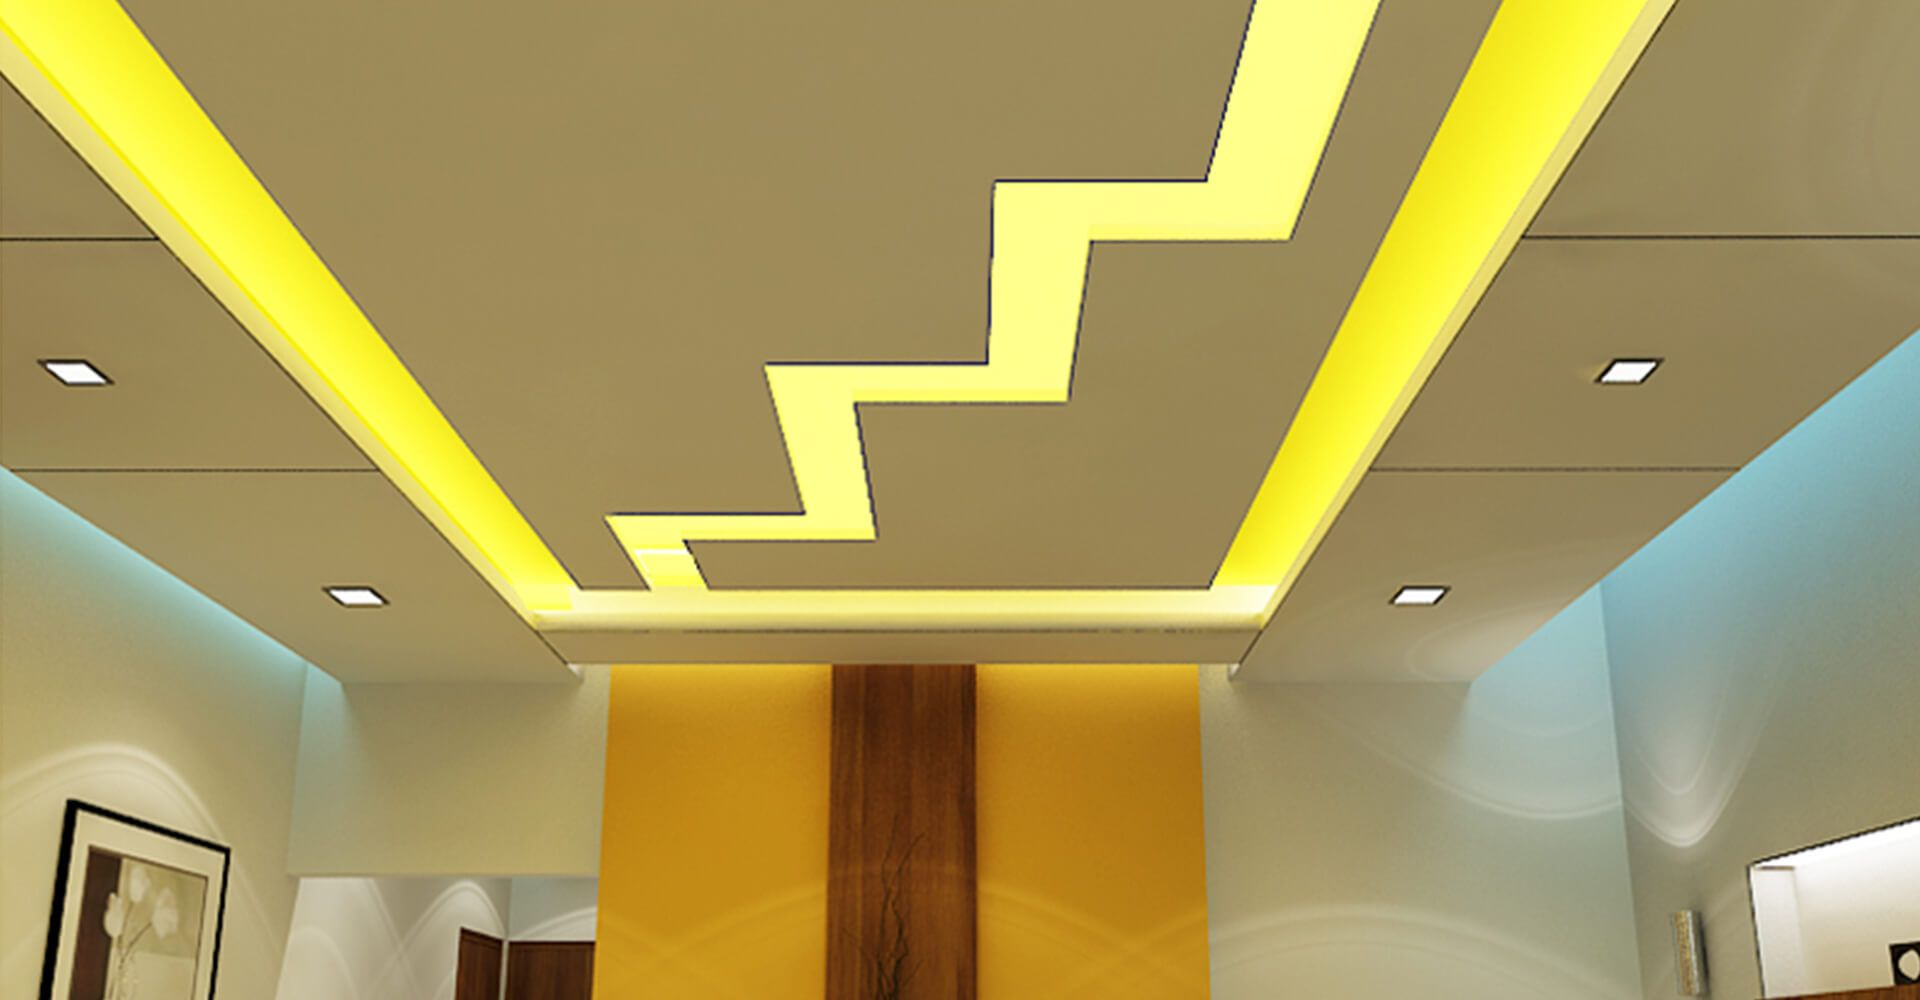 residential false ceiling | Ceiling designs | Pinterest | Ceilings ...